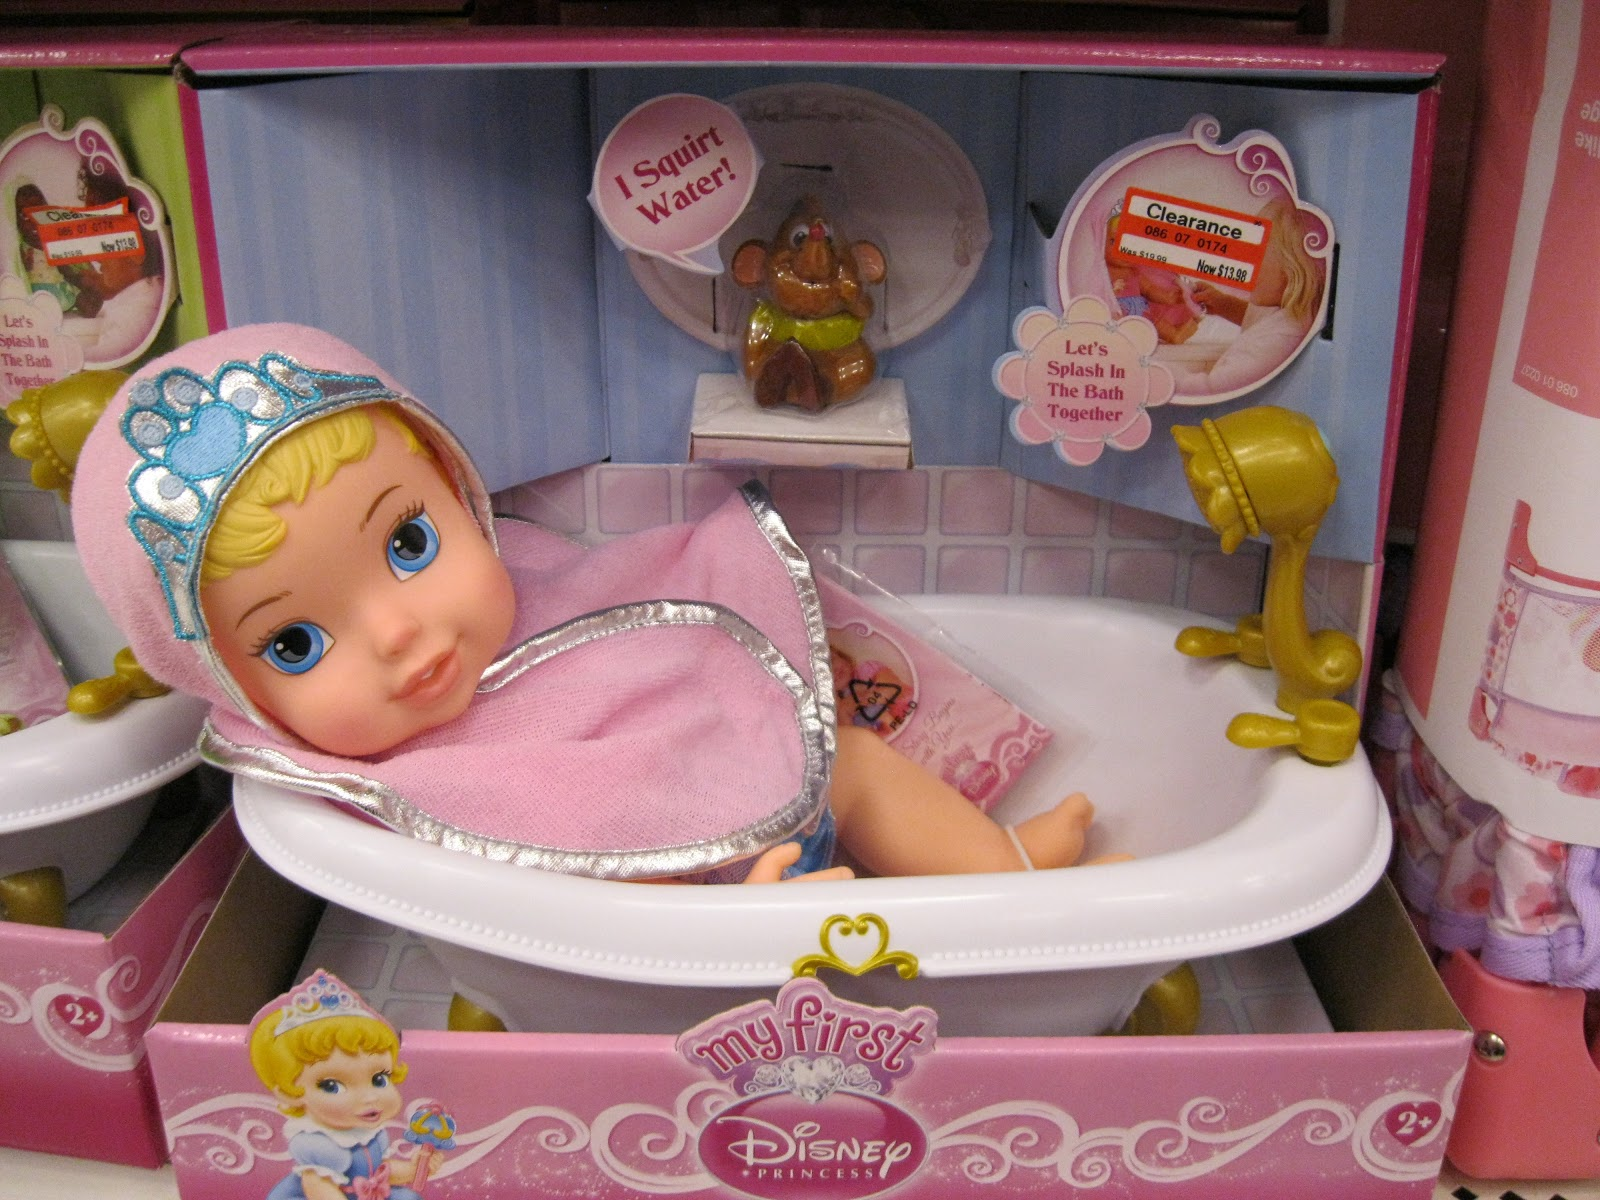 Target Toy Clearance Circo Dolls Barbie Fisher Price